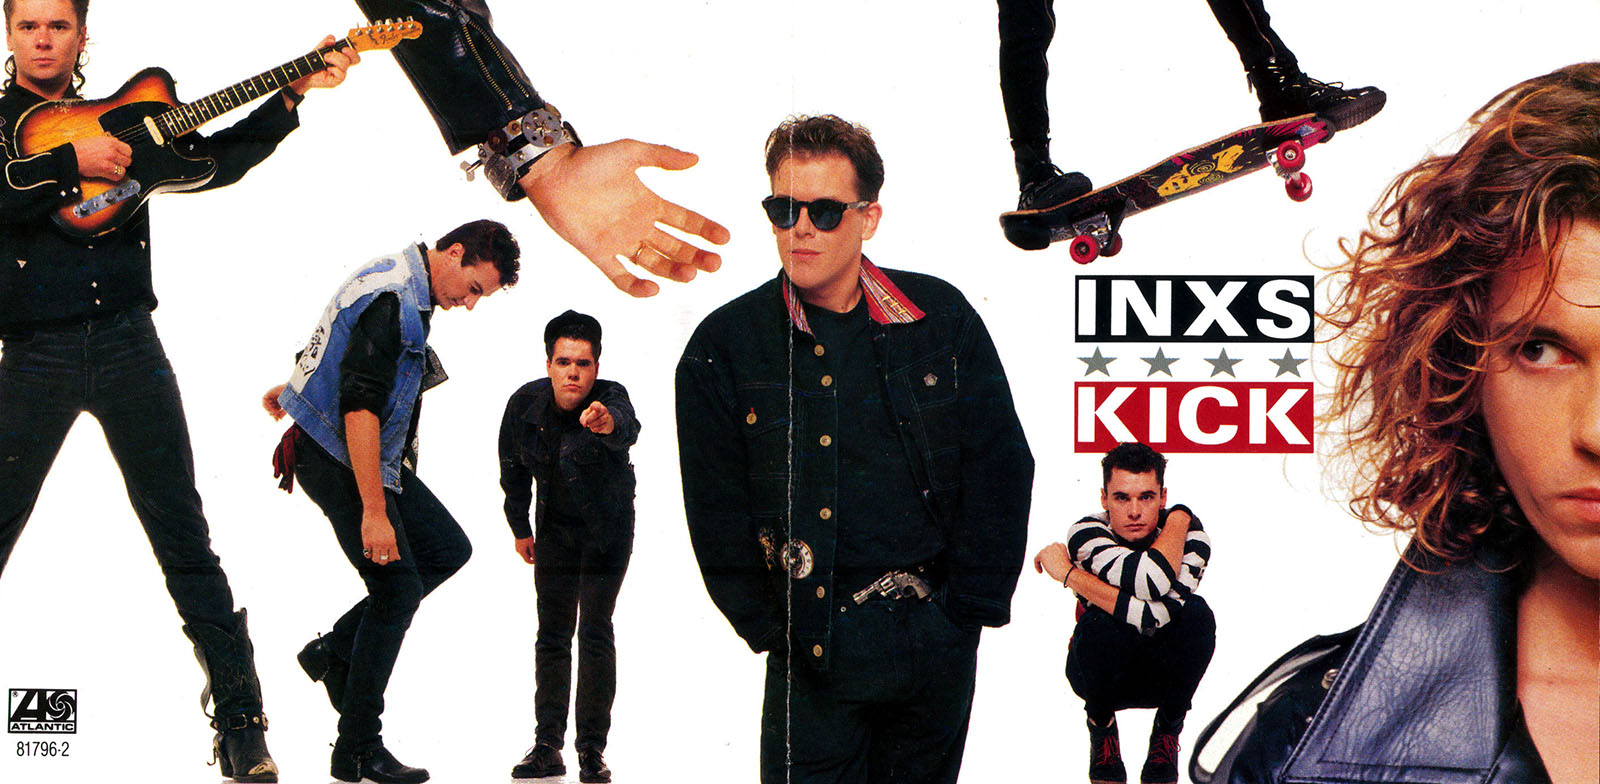 Sound of the '80s: The INXS 'Kick' Guitar Tone 30 Years On